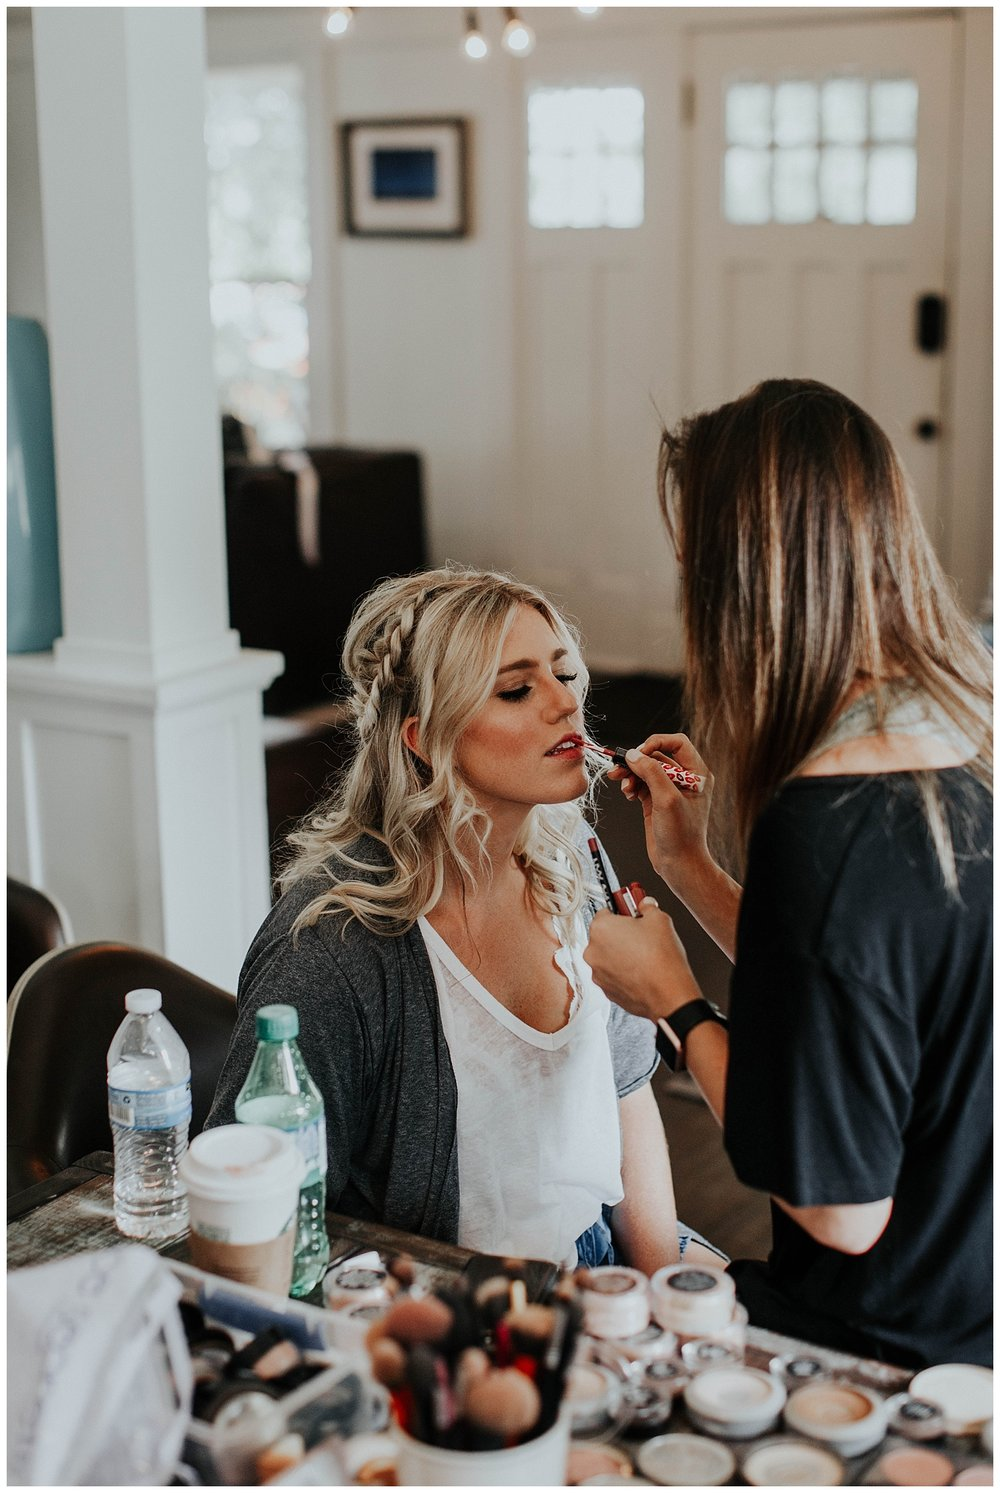 Madalynn Young Photography | Sarah Catherine + Will | Bridge Street Gallery and Loft | Atlanta Wedding Photographer_0048.jpg